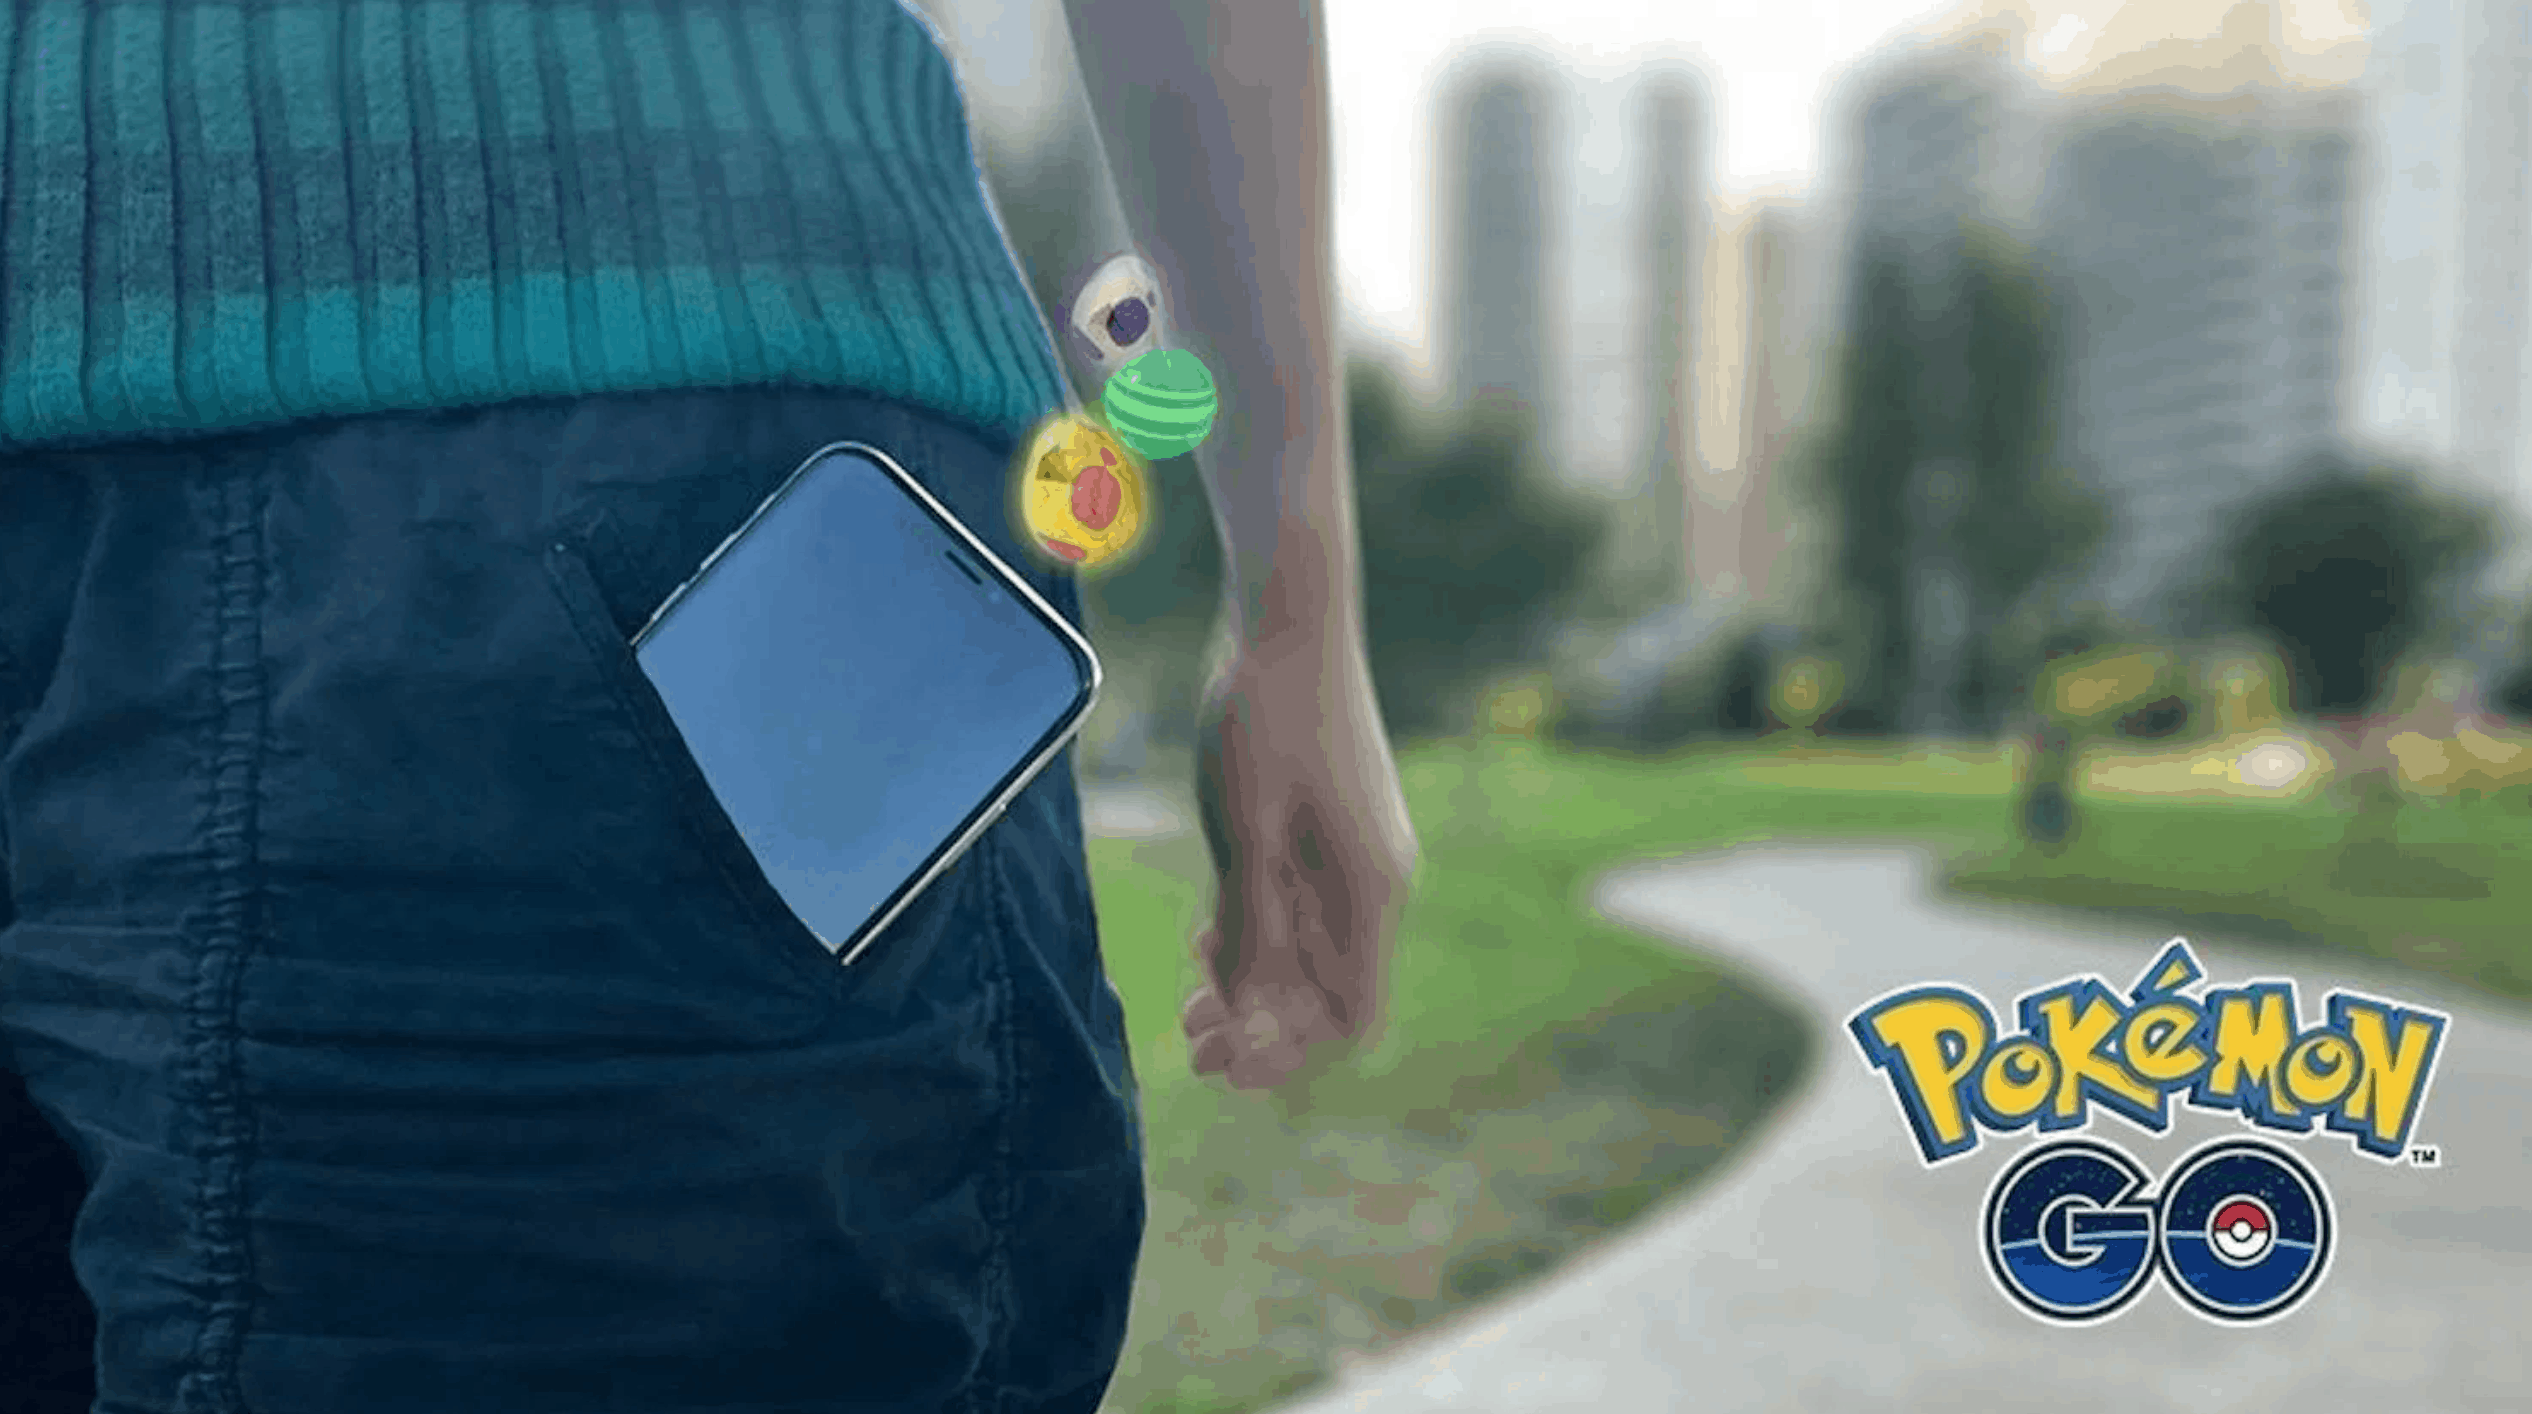 Pokemon GO to Add Multiplayer Battle Feature by 2020